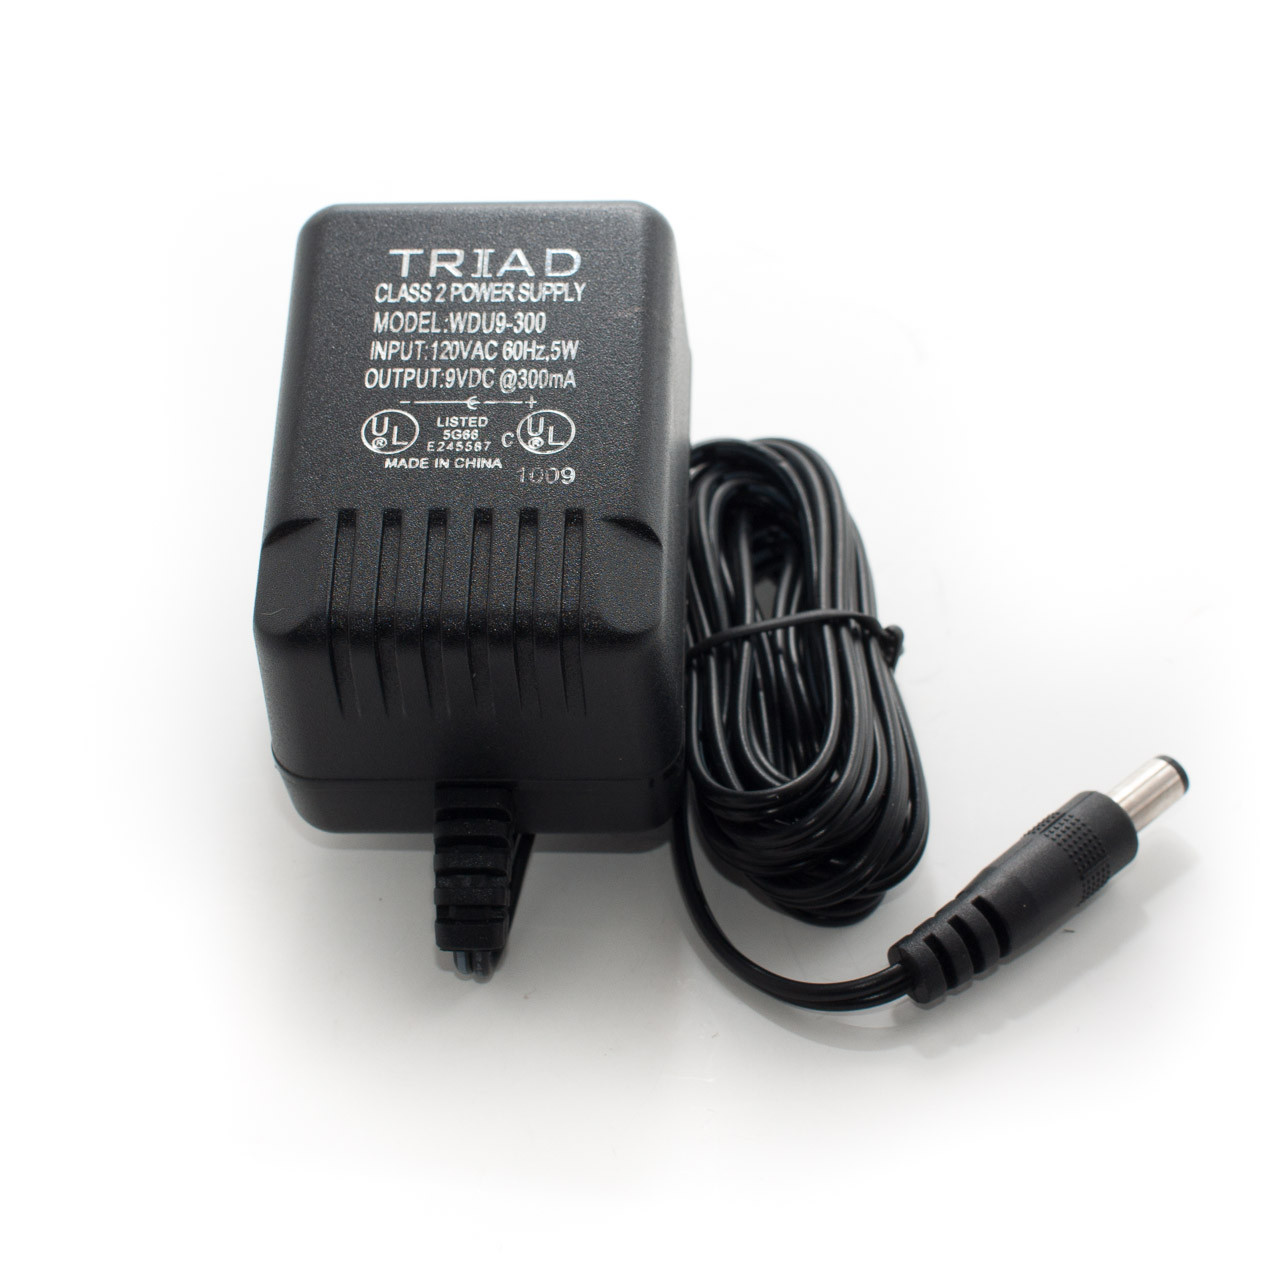 Triad 9VDC 300mA Power Supply